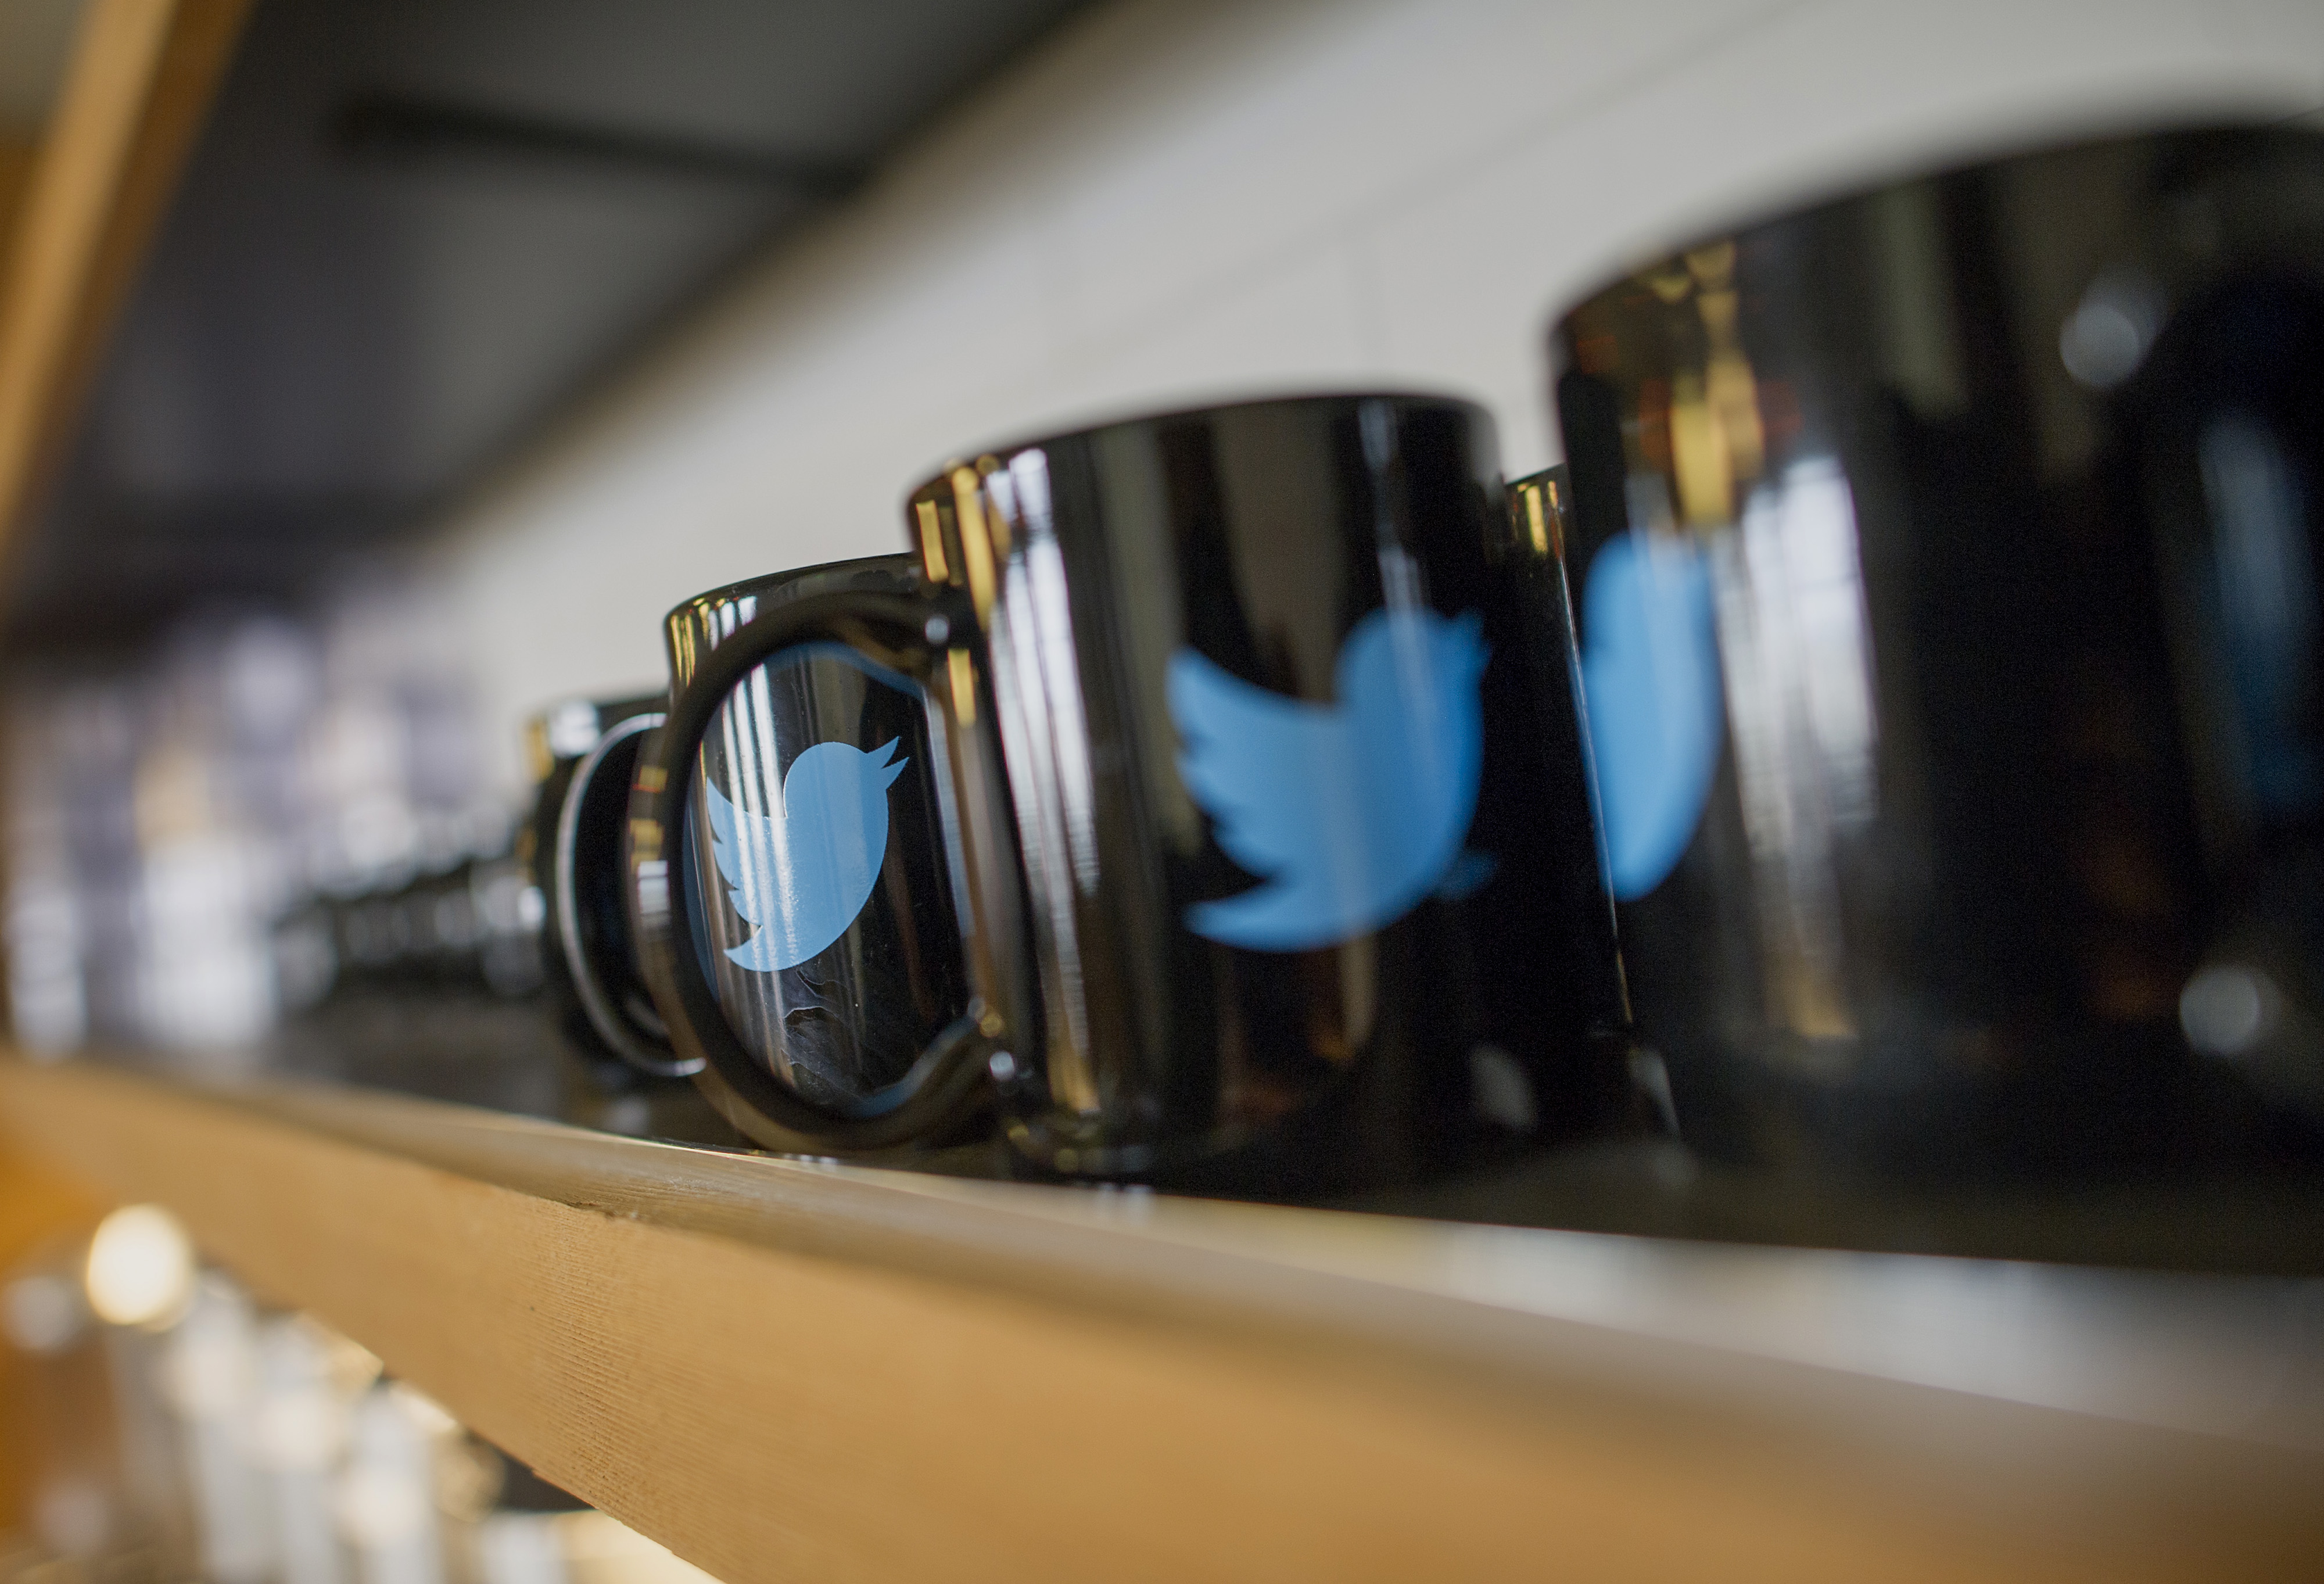 The Twitter Inc. logo is seen on coffee mugs inside the company's headquarters in San Francisco, California, U.S., on Friday, Sept. 19, 2014.